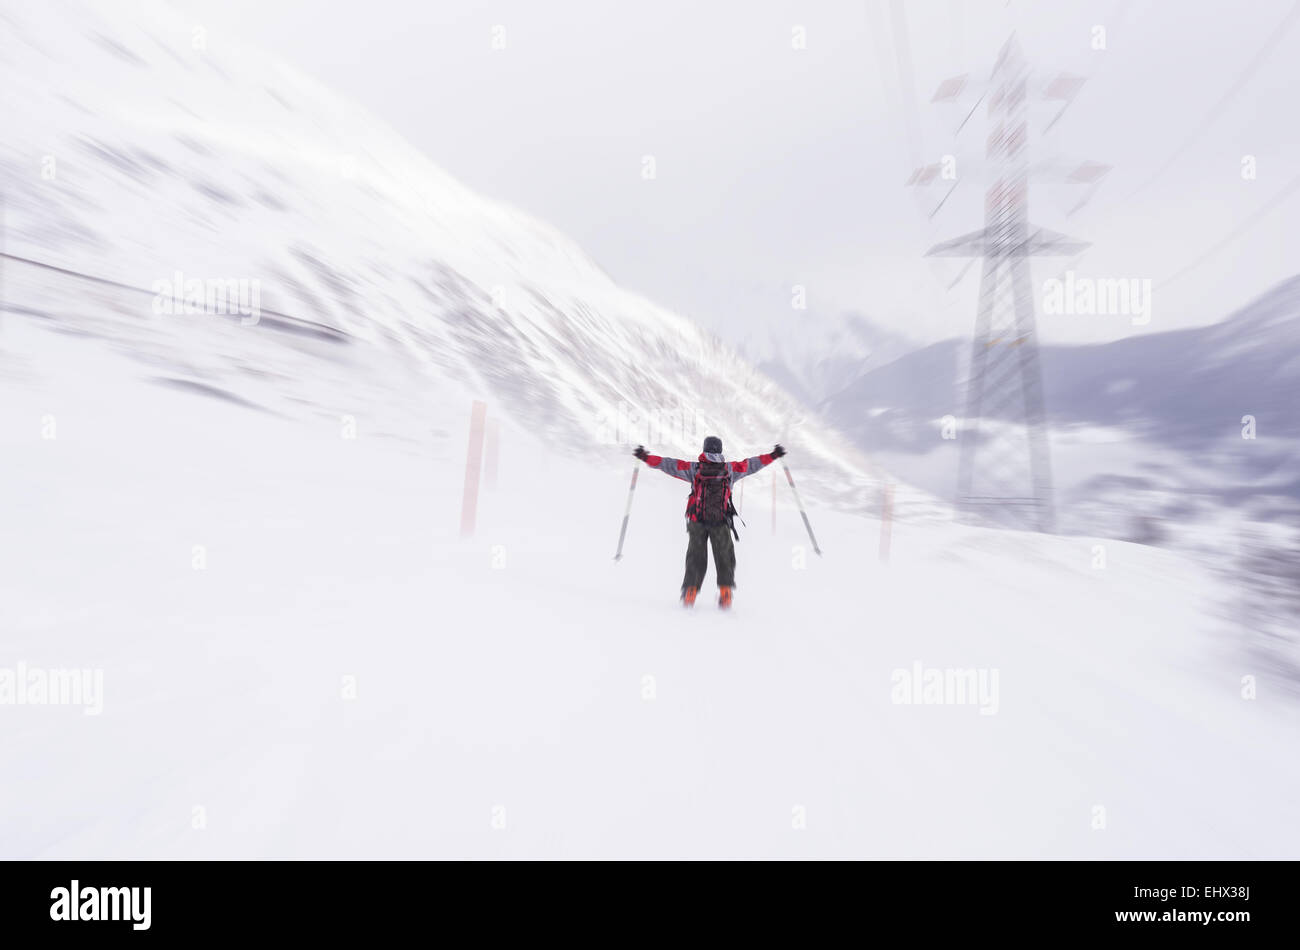 Speed skiing on snowy slope in the famous and scenic ski resort of La Thuile, Aosta Valley, Italy. Cloudy sky, snowing. - Stock Image